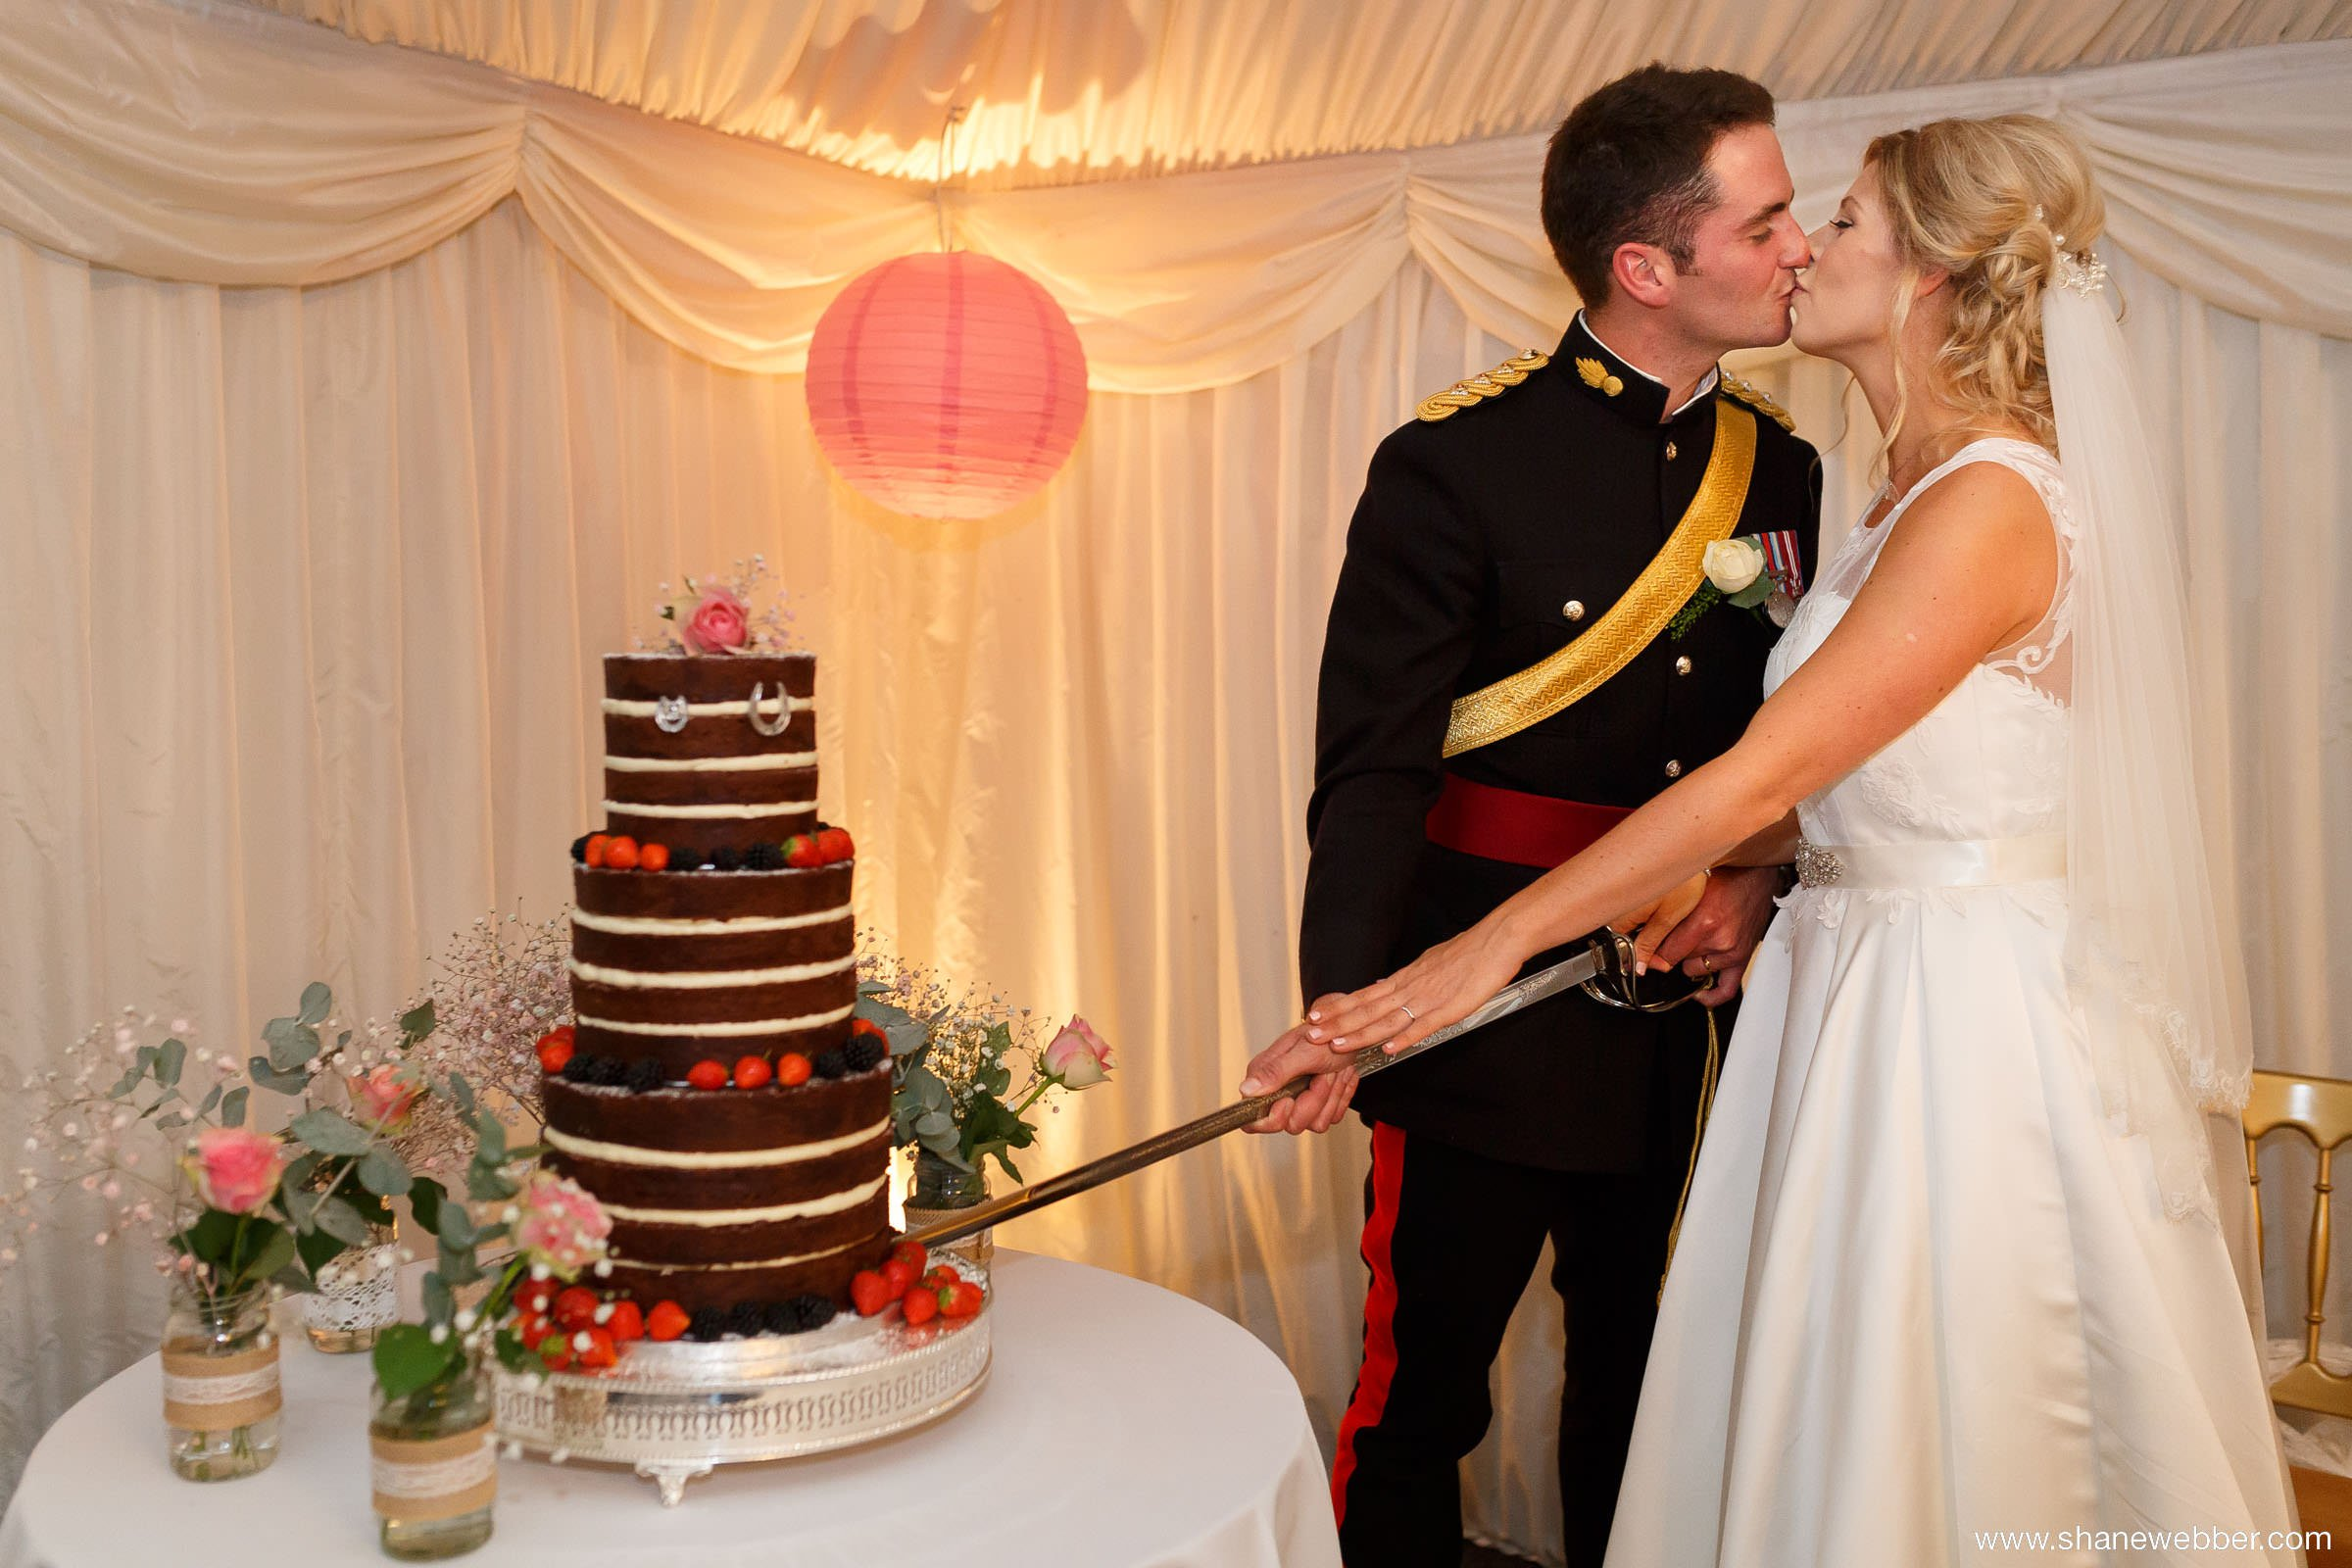 Cutting wedding cake with a sword